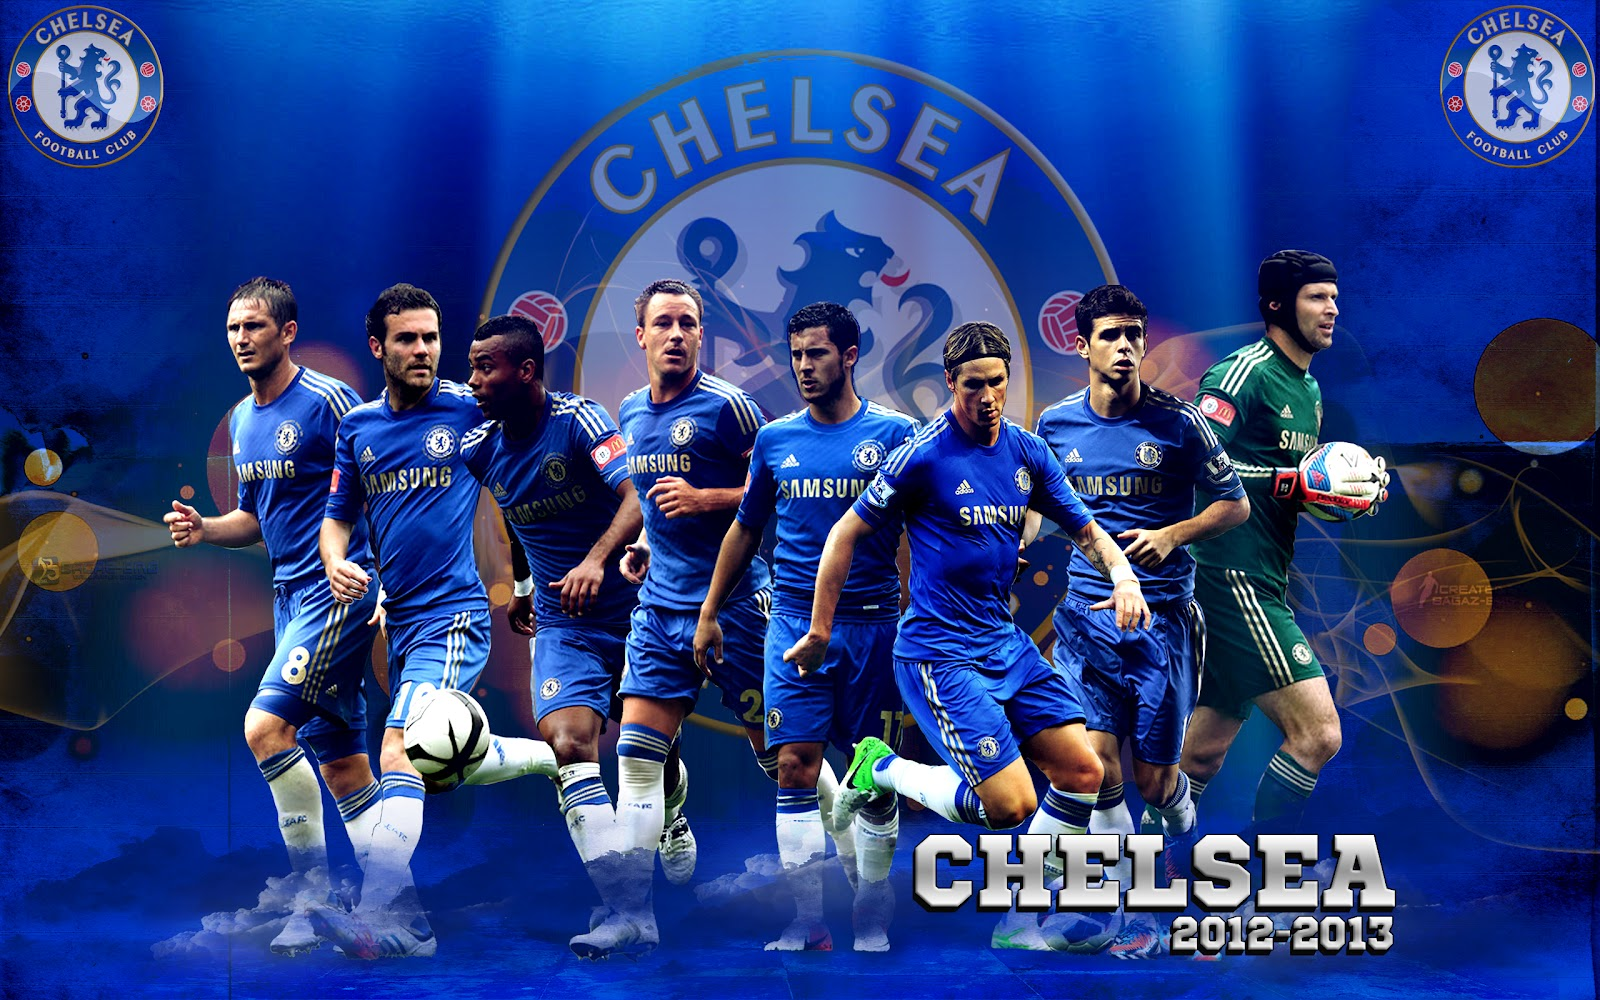 All Wallpapers: Chelsea FC Logo Wallpapers 2013